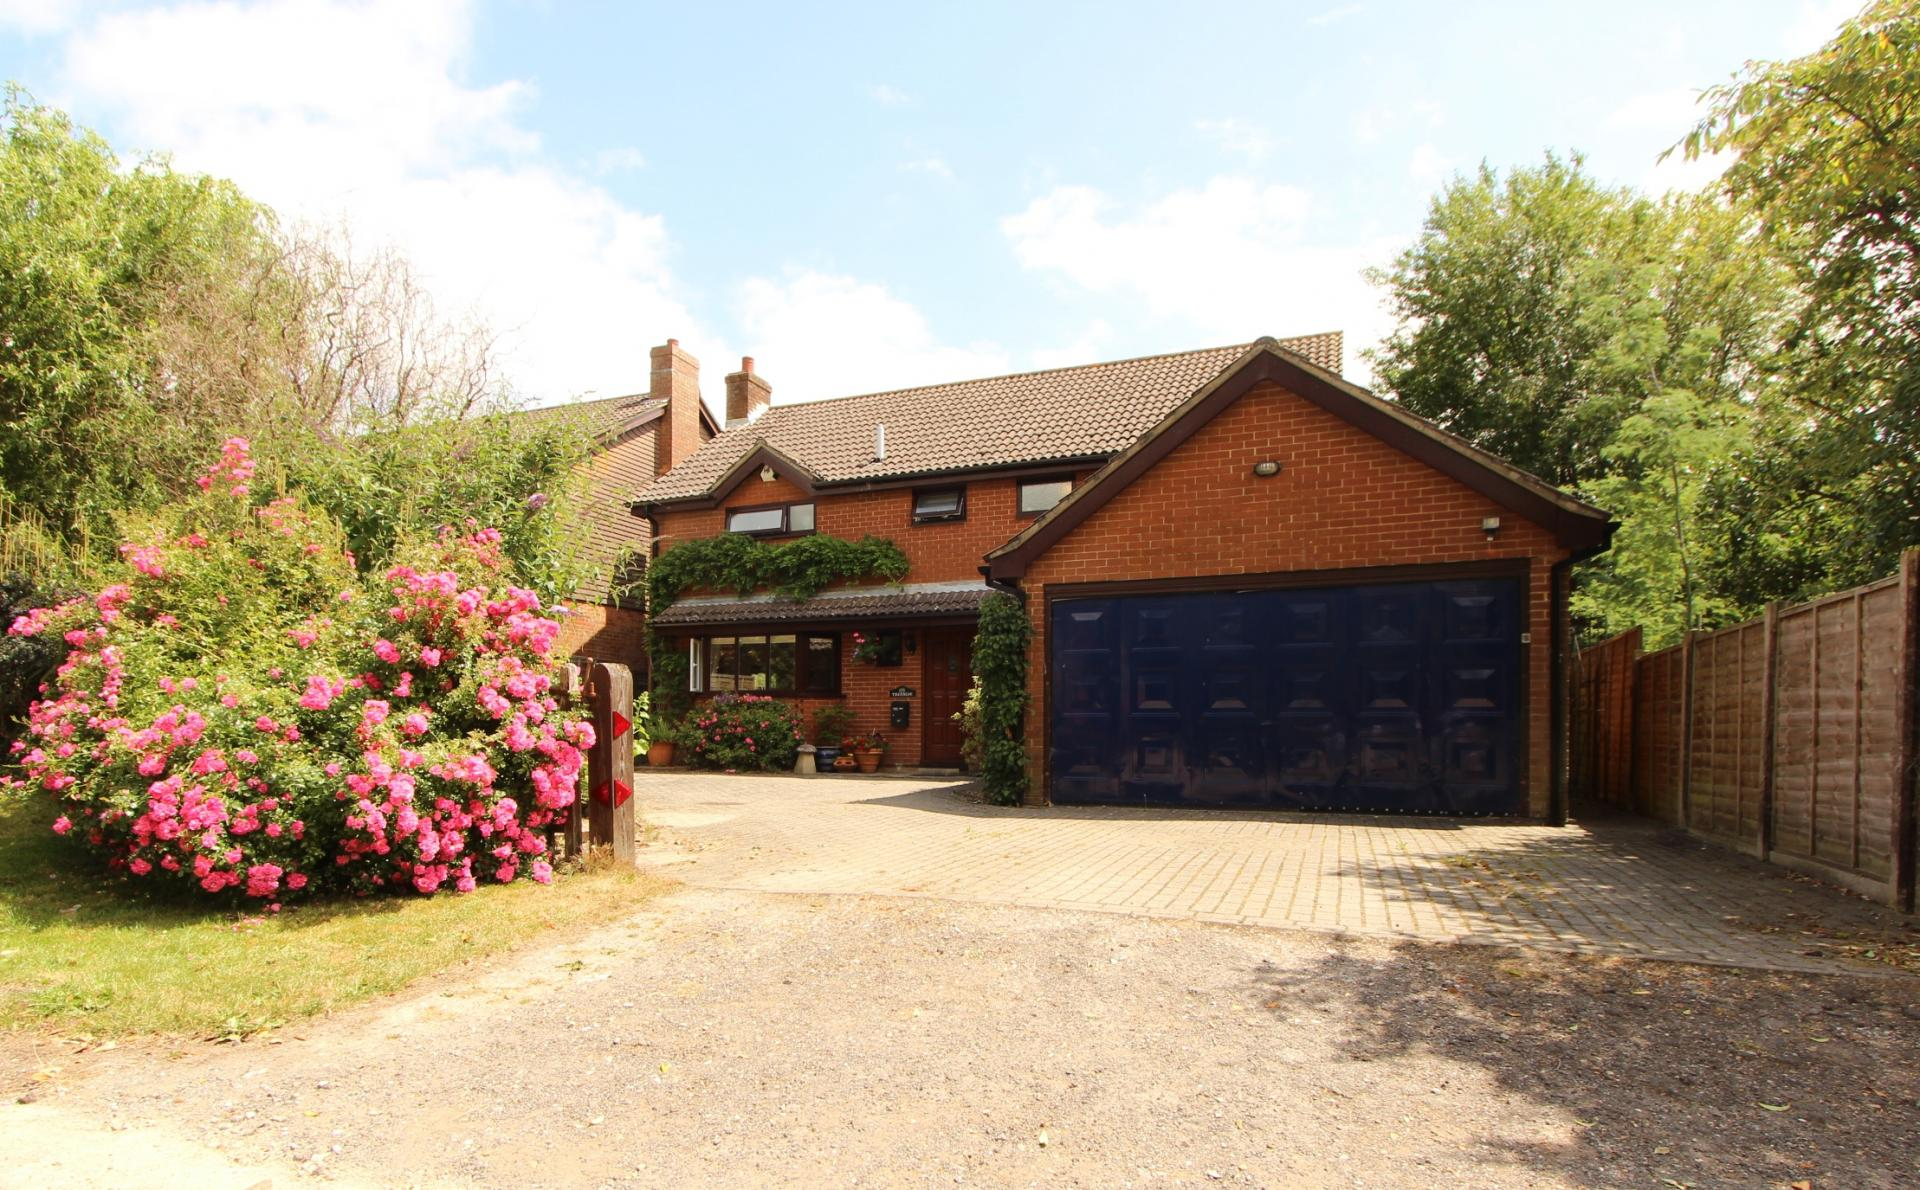 4 Bedrooms Detached House for sale in Southampton